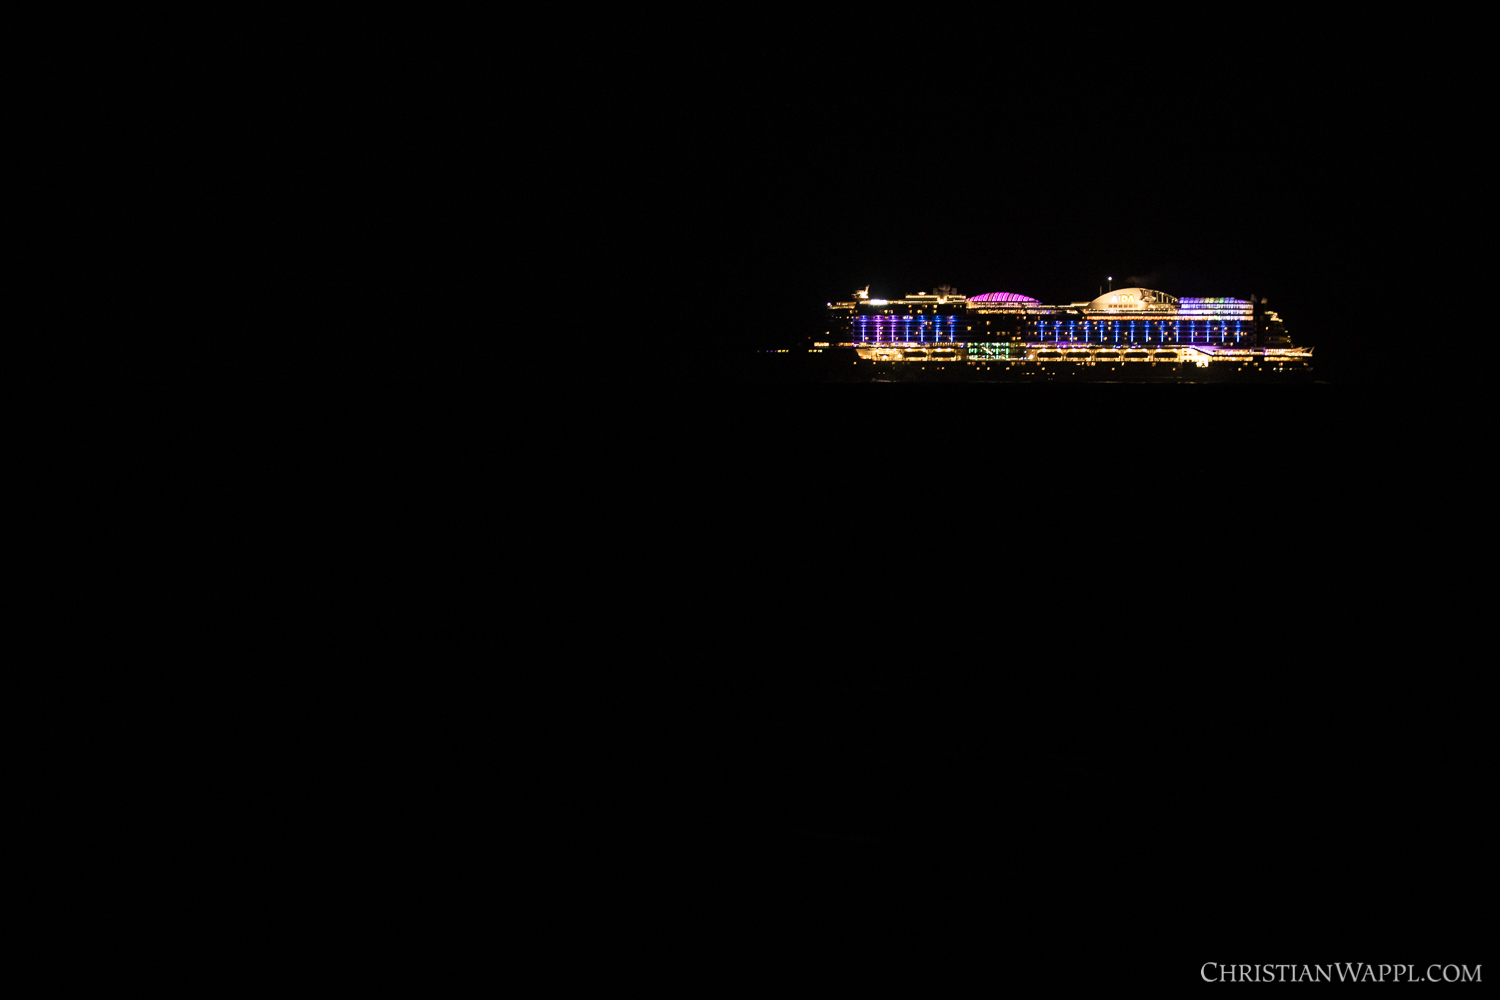 A cruise ship, cleverly combining light pollution with regular pollution